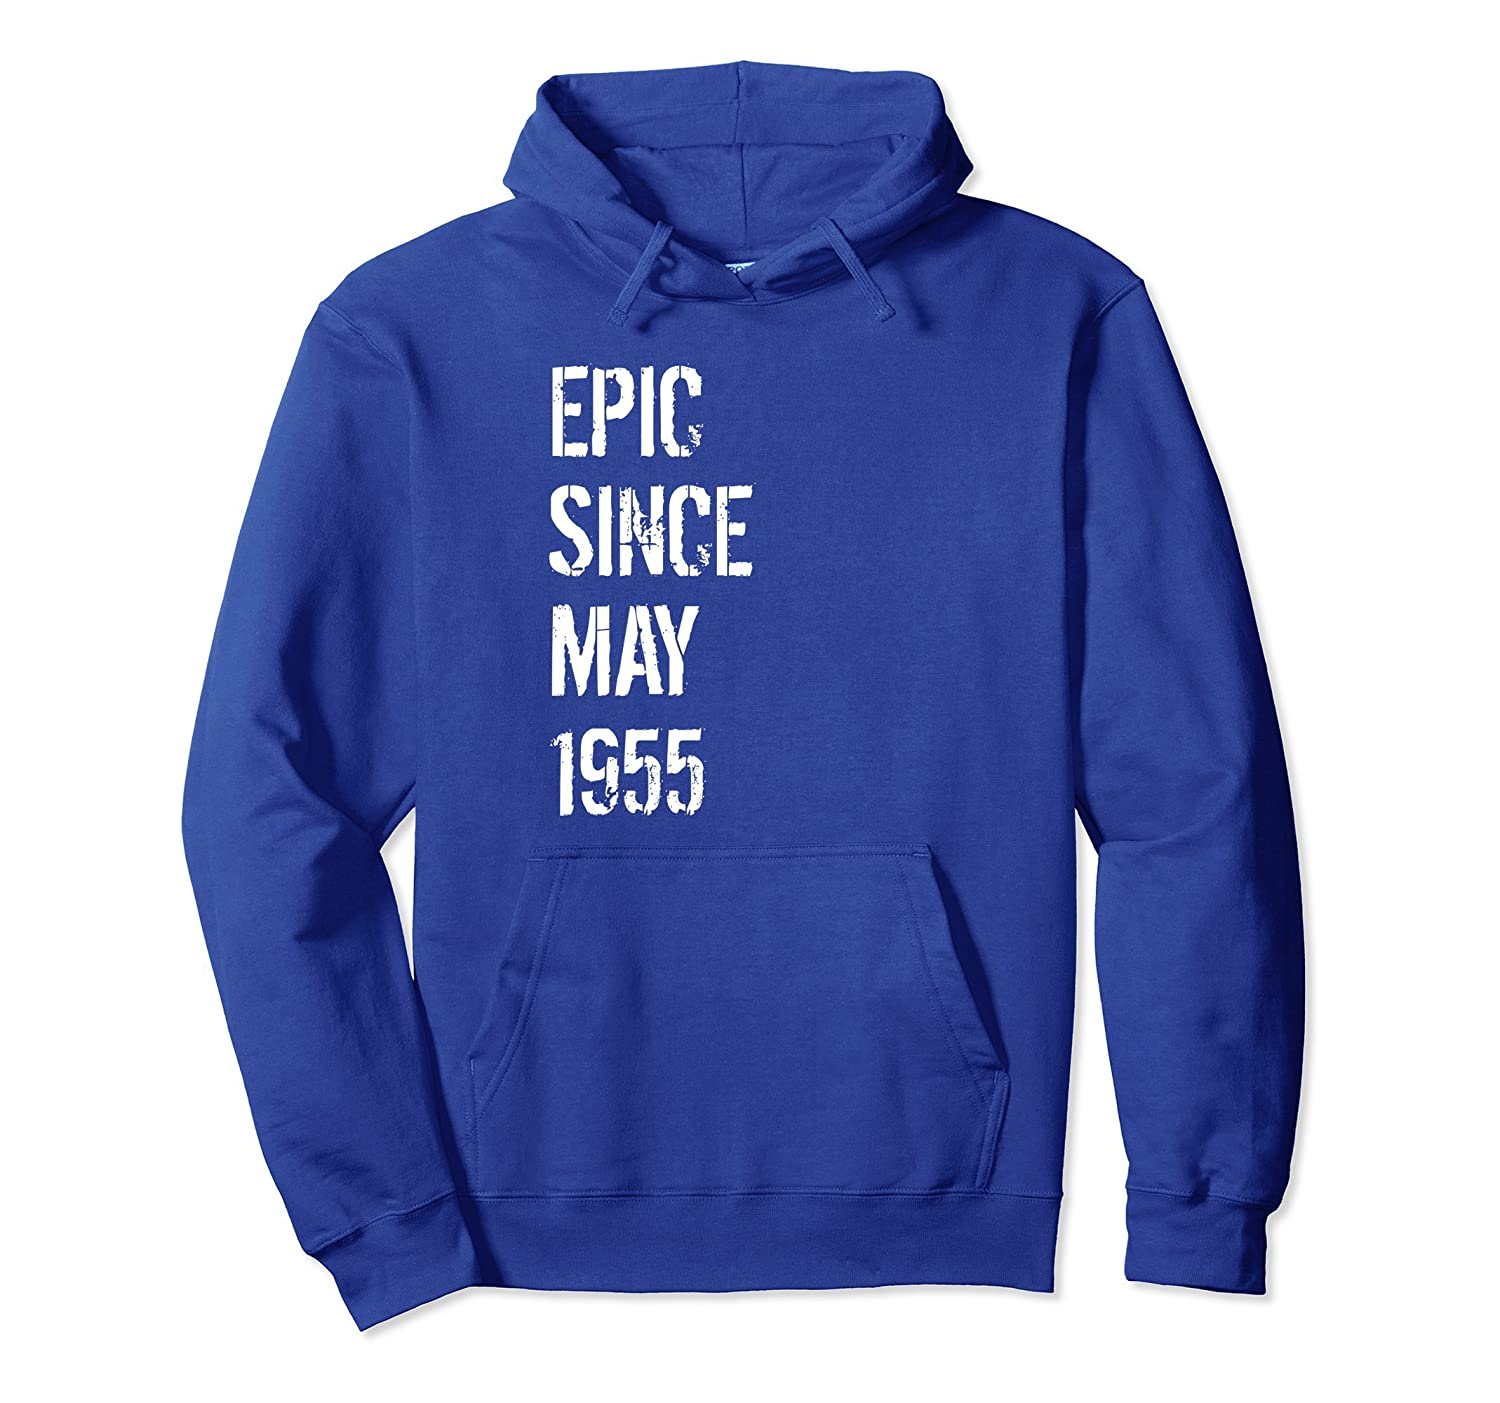 63rd Birthday Gift Hoodie for Men & Women Born In May 1955-alottee gift